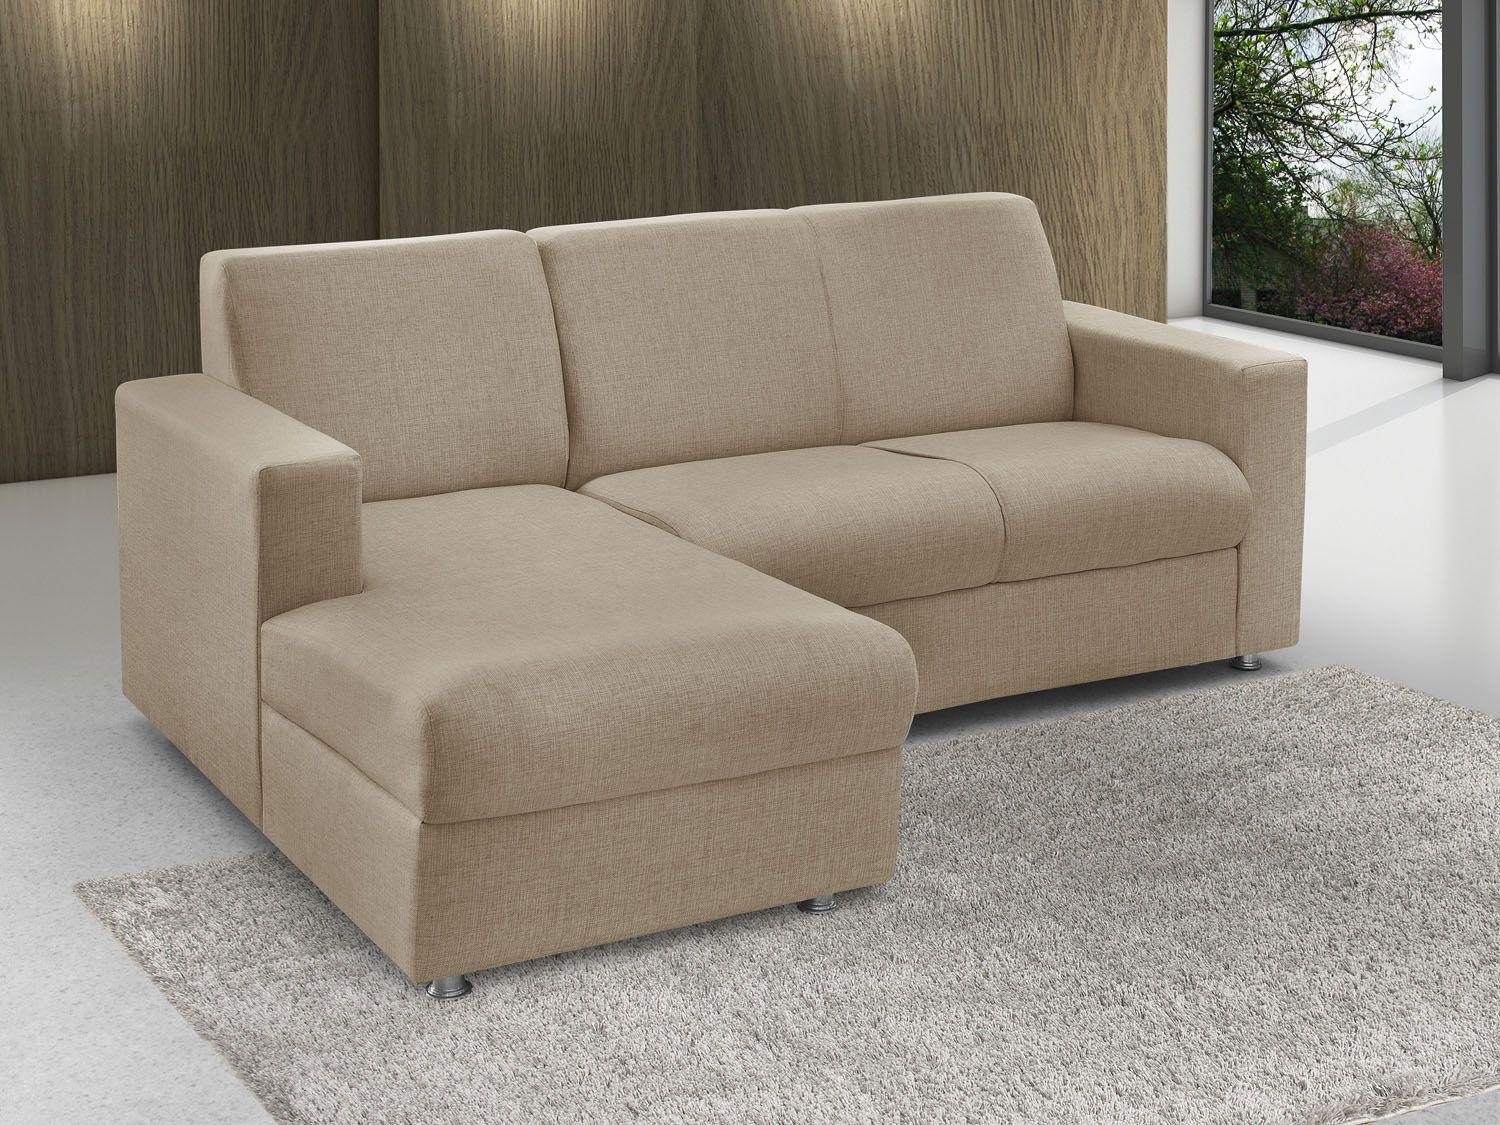 Sof chaise 2 lugares chenille roma american comfort for Sofa 5 lugares com chaise